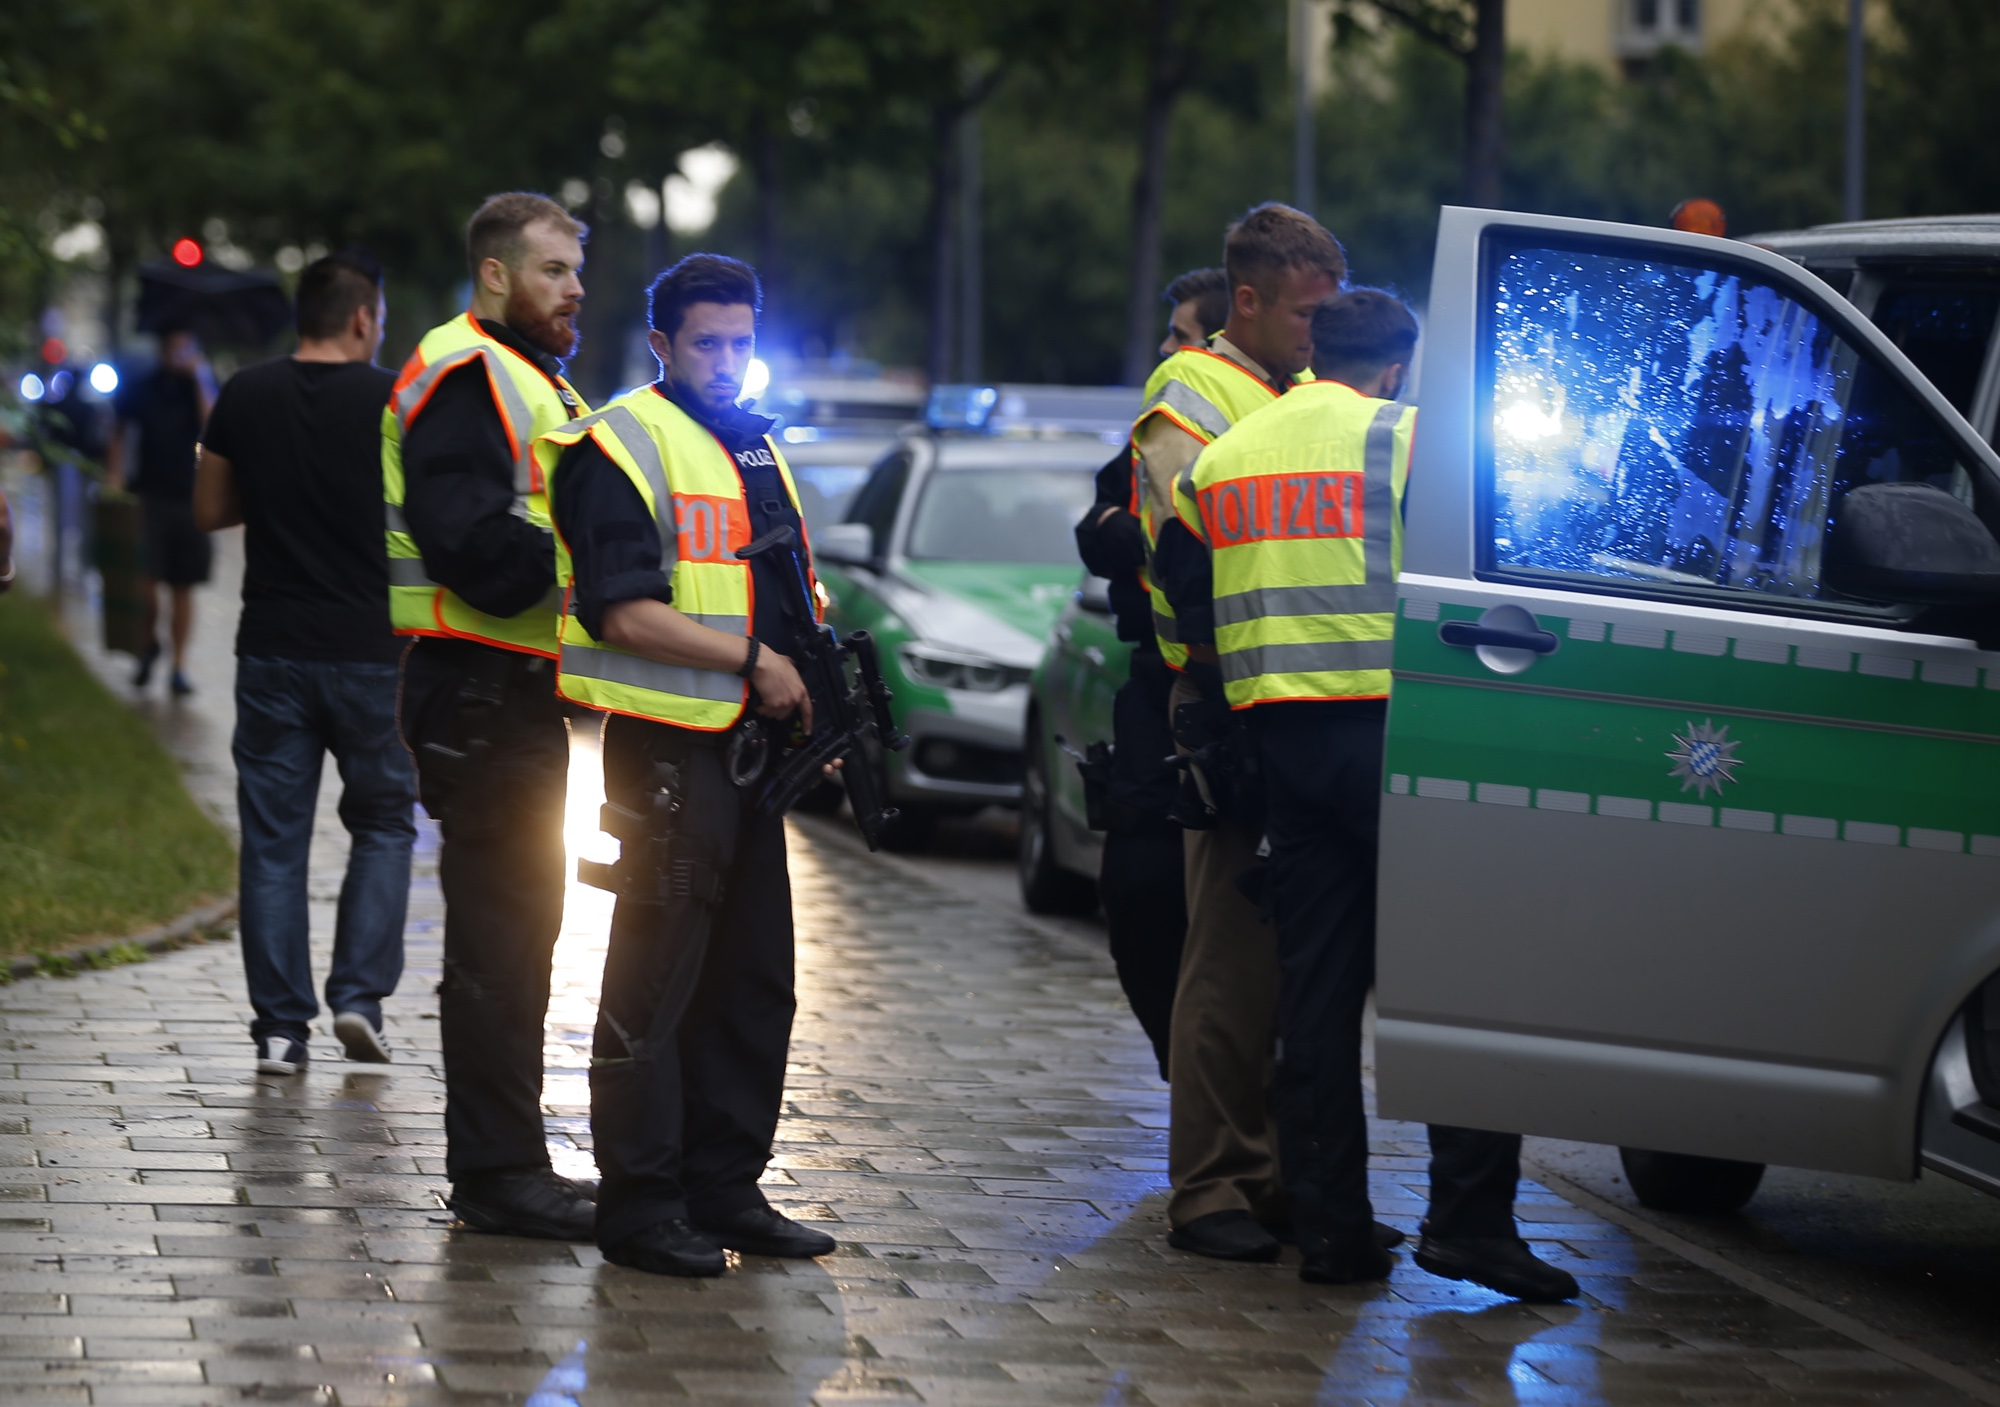 Police secure a street near mass shooting in Munich, July 22, 2016.  REUTERS